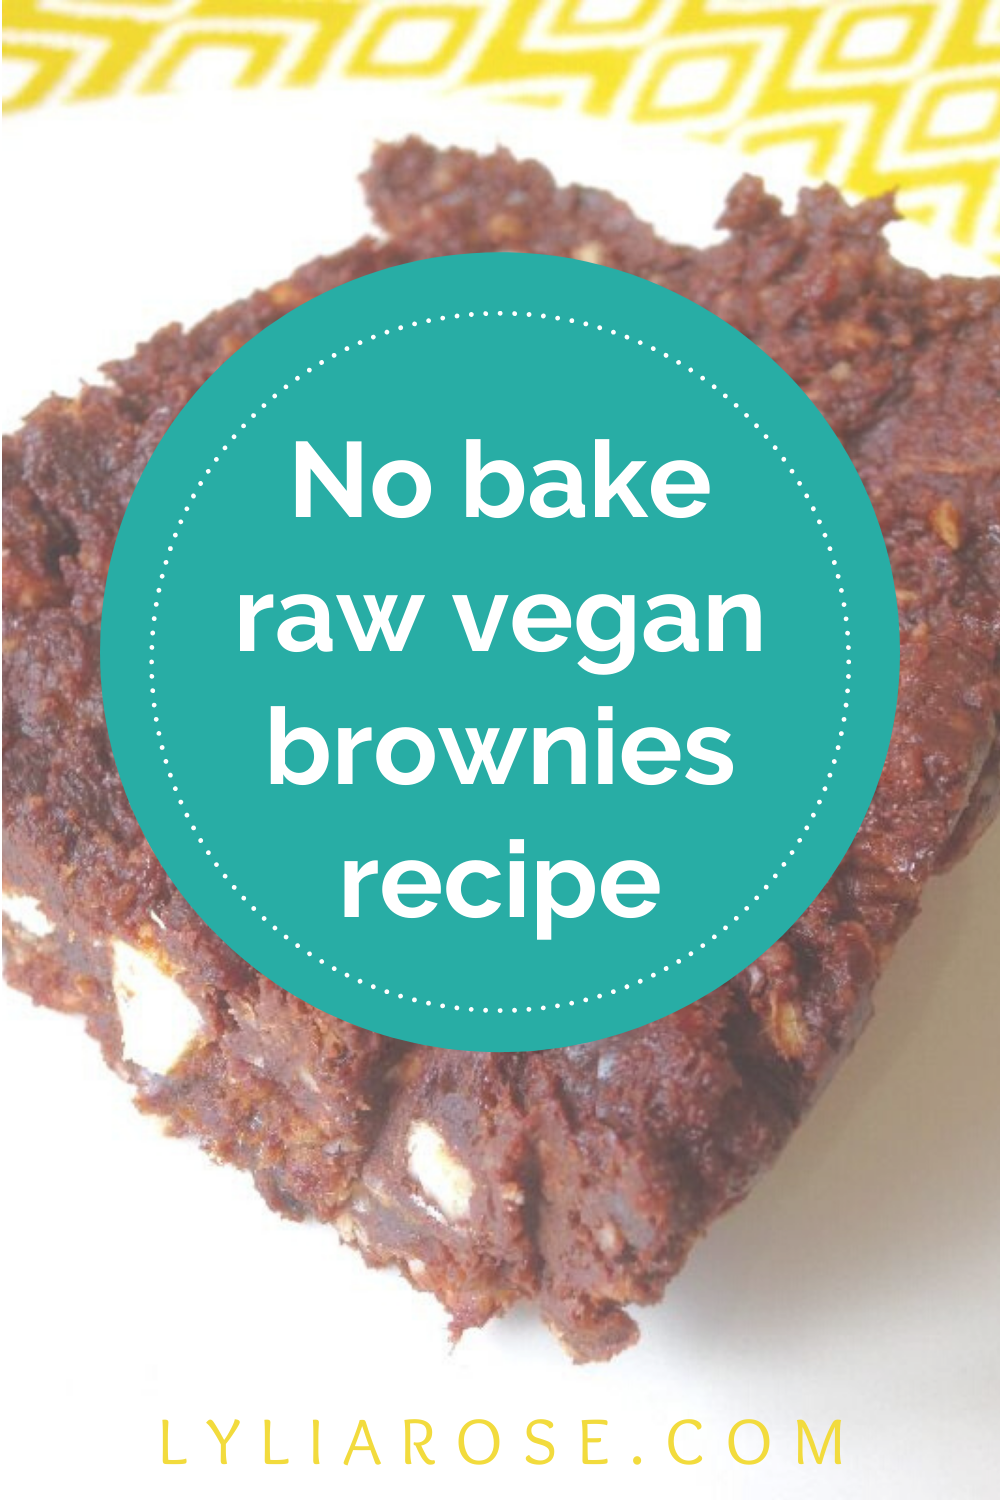 Delicious no bake raw vegan brownies recipe (1)